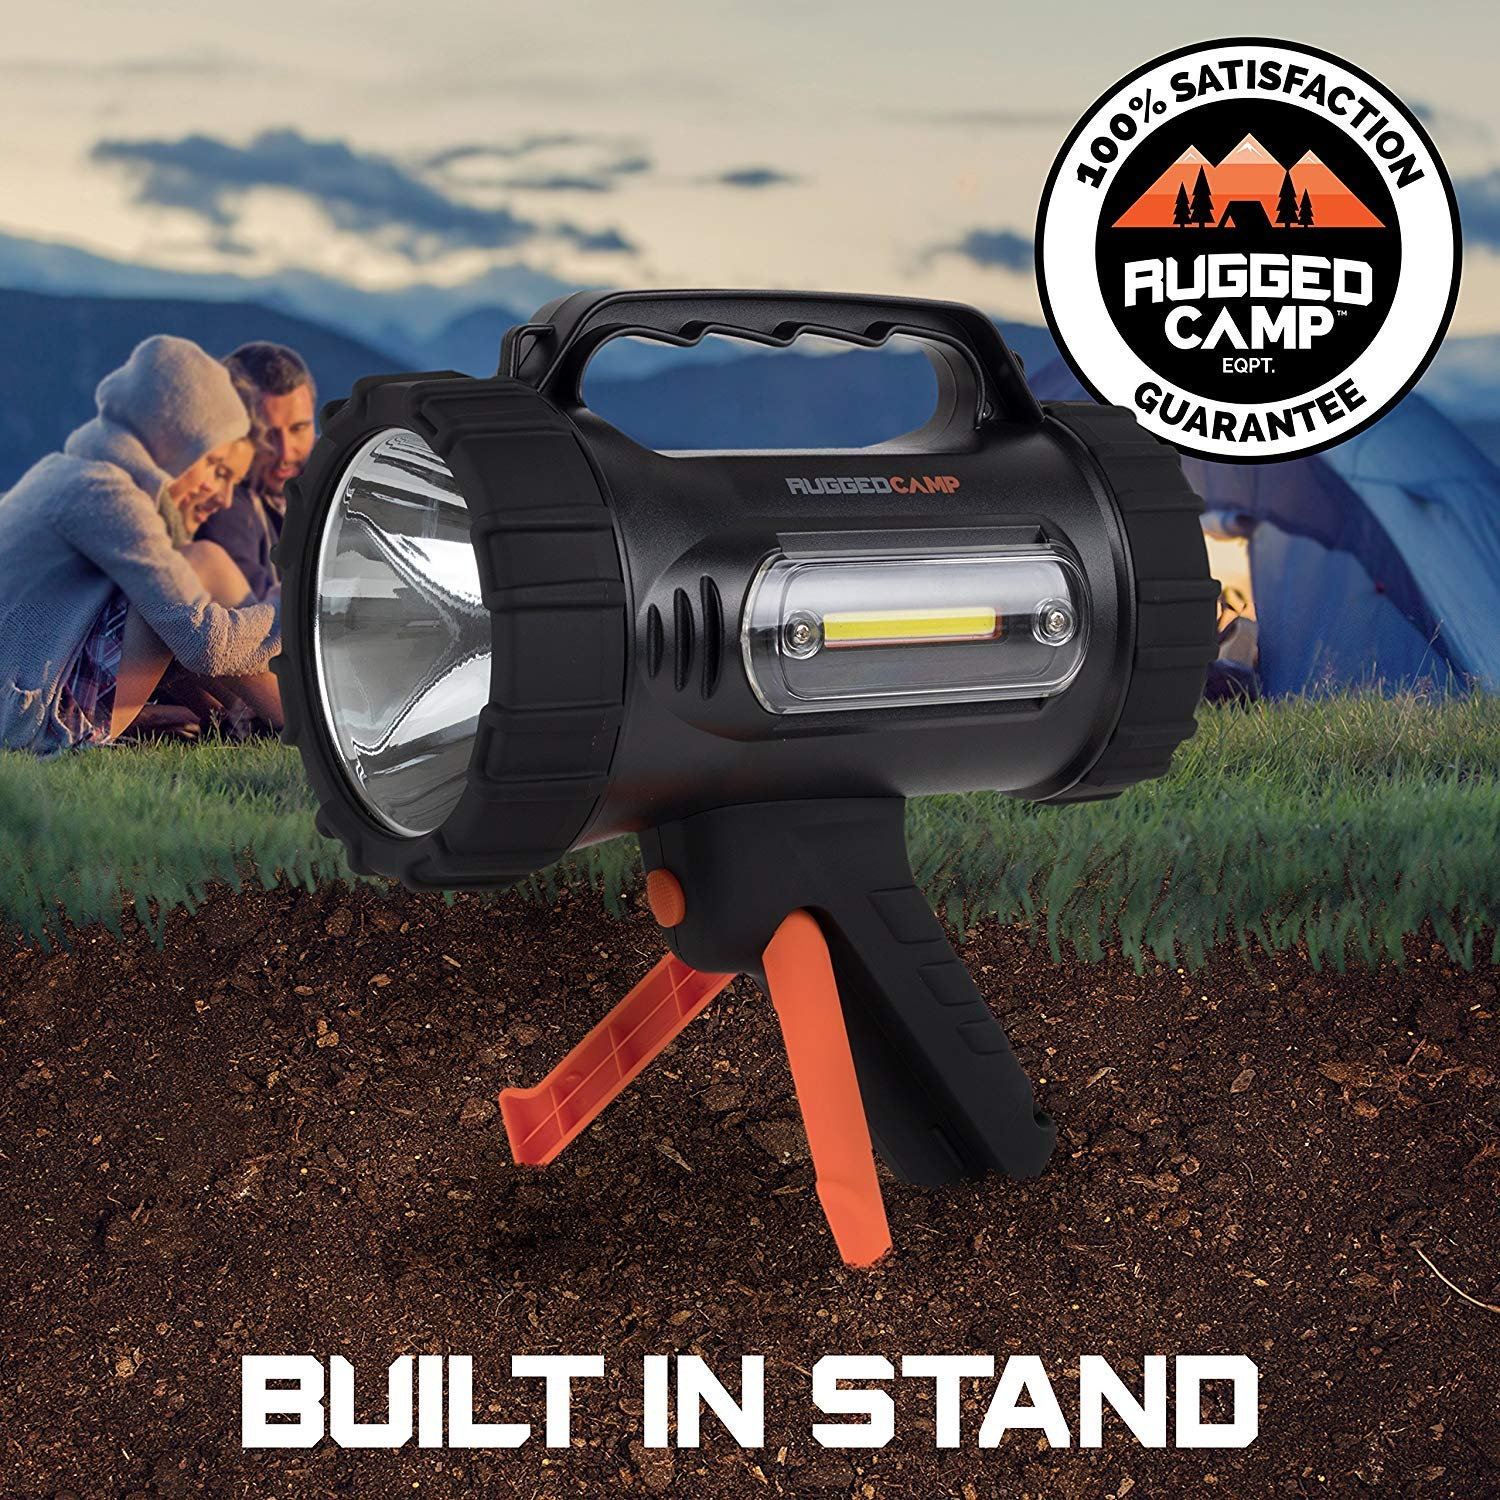 Rugged Camp Titan X10 Rechargeable Spotlight - 1000 Lumens - High Powered 10W LED Bright Flashlight - Work Light & Tripod - Perfect for Camping, Hiking, Hunting, Emergencies & Outdoors (Black/Orange) by Rugged Camp (Image #6)